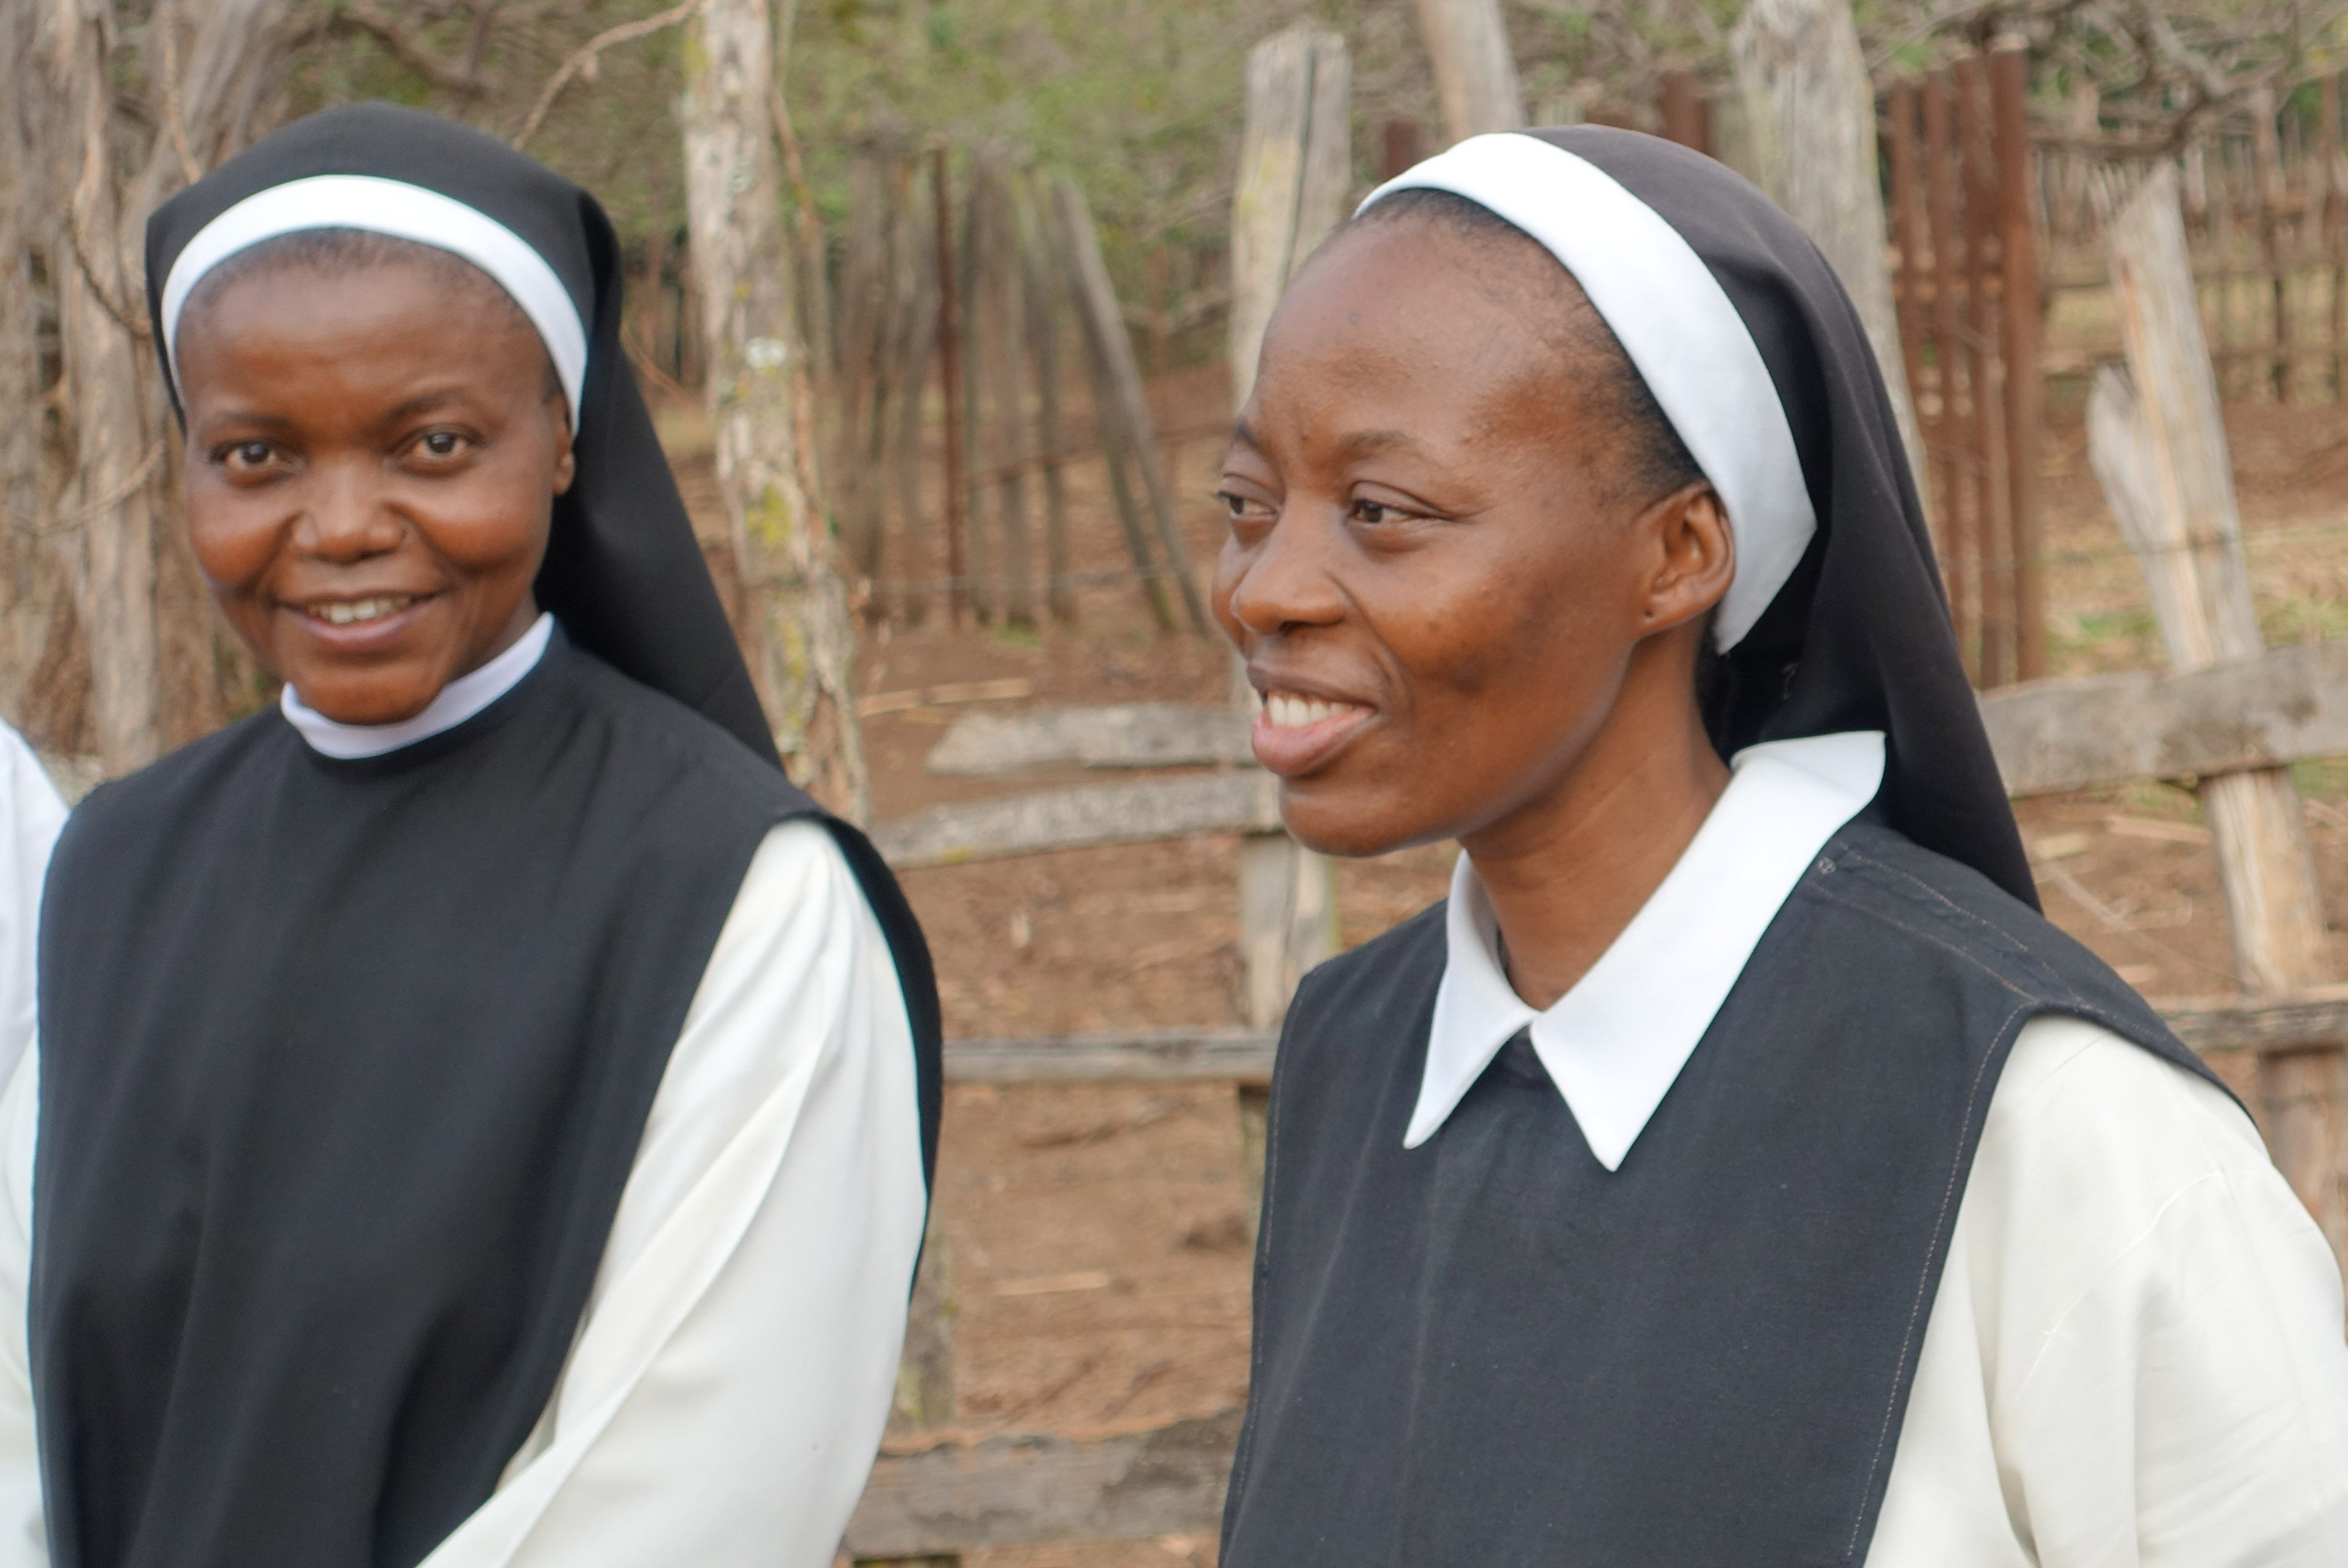 Sisters from the Trappist Monastery of Murhesa. The contemplative Sisters have been by threatened militia groups and one Sister was shot dead.